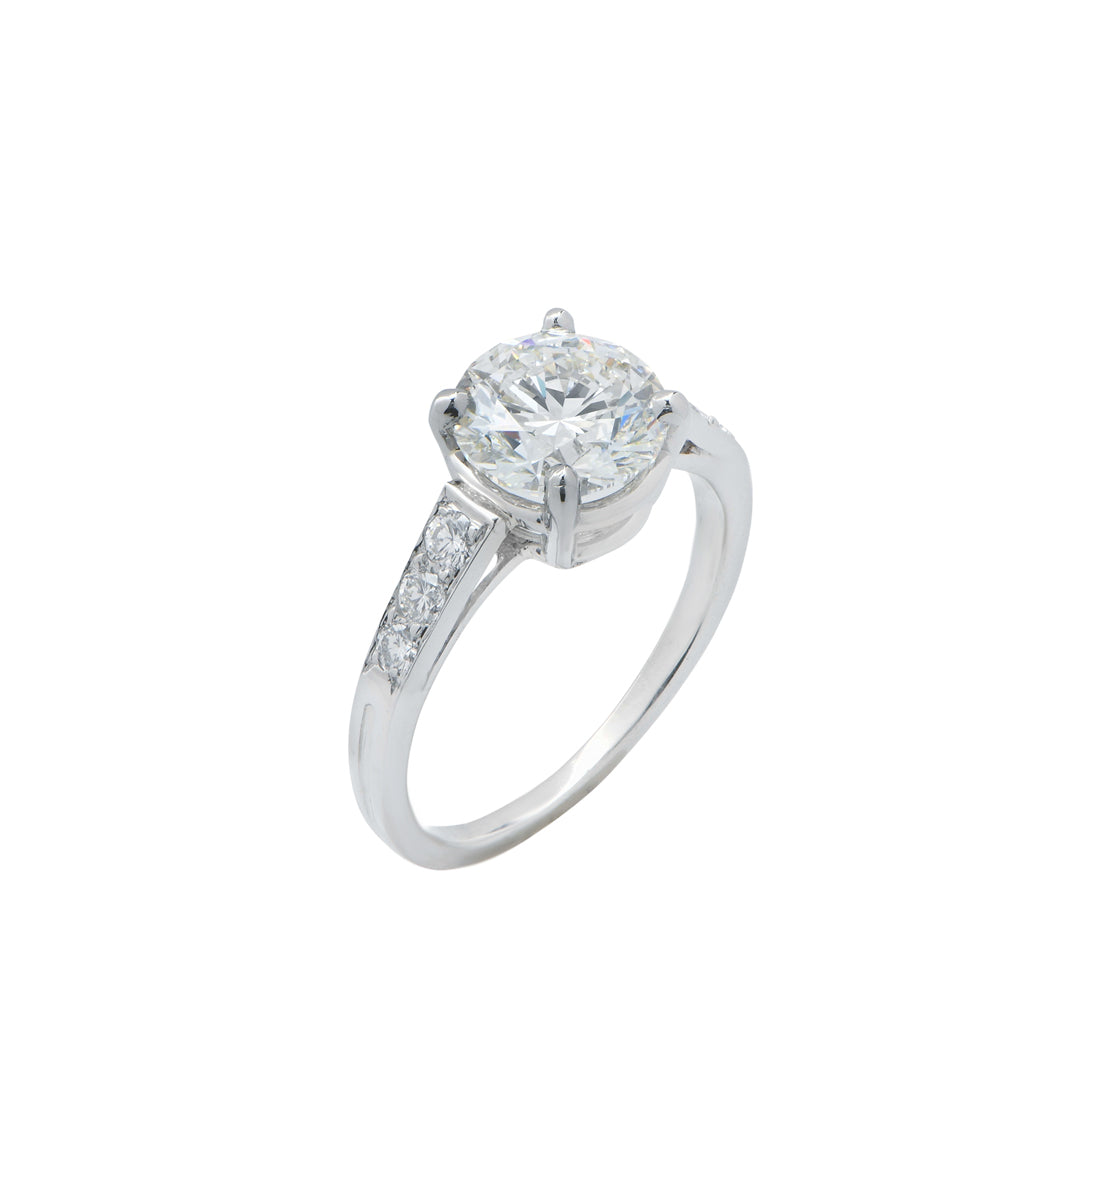 Engagement ring miami and coral gables, diamond miami coral gables